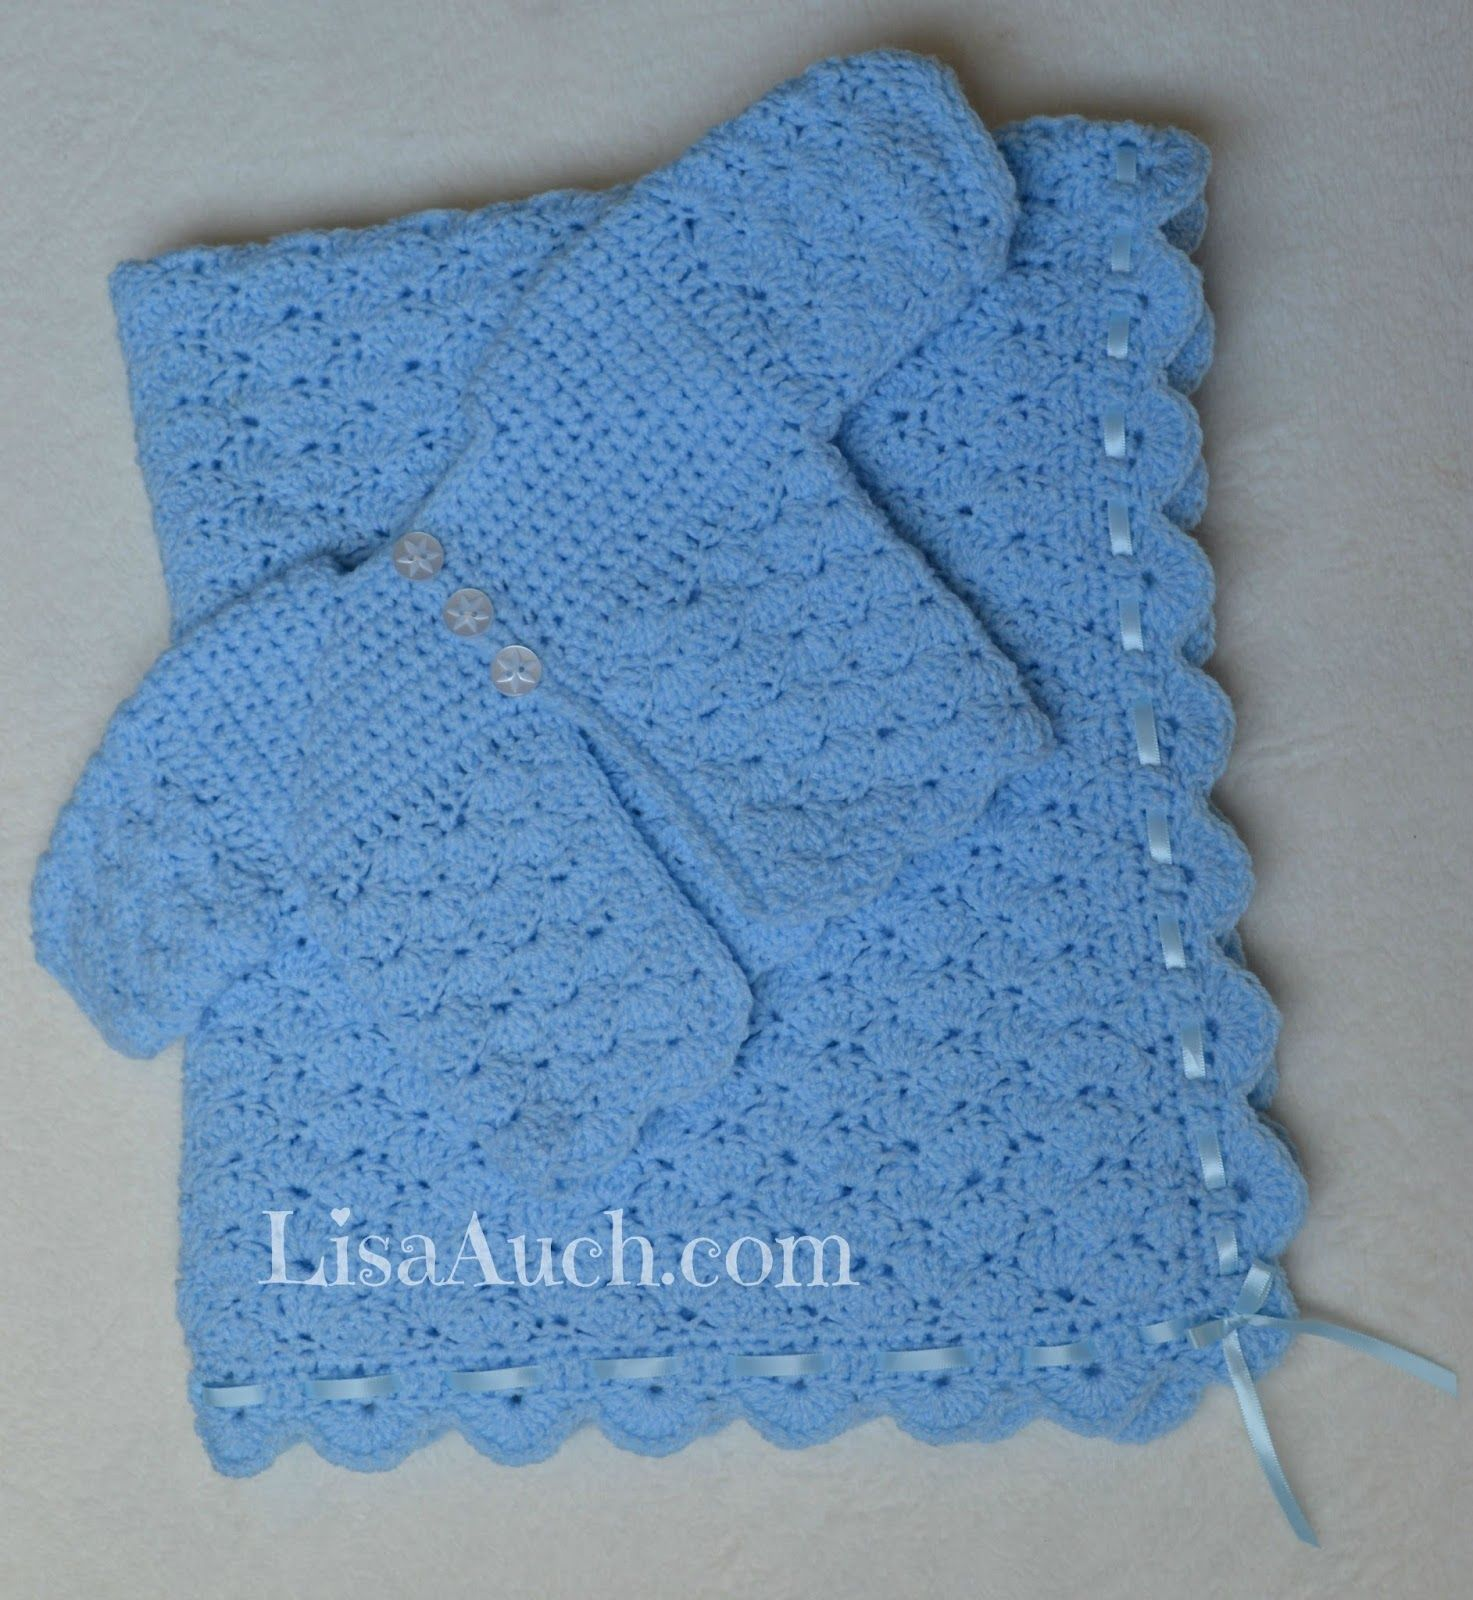 Free crochet patterns and designs by lisaauch baby gift set free crochet patterns and designs by lisaauch baby gift set bankloansurffo Gallery